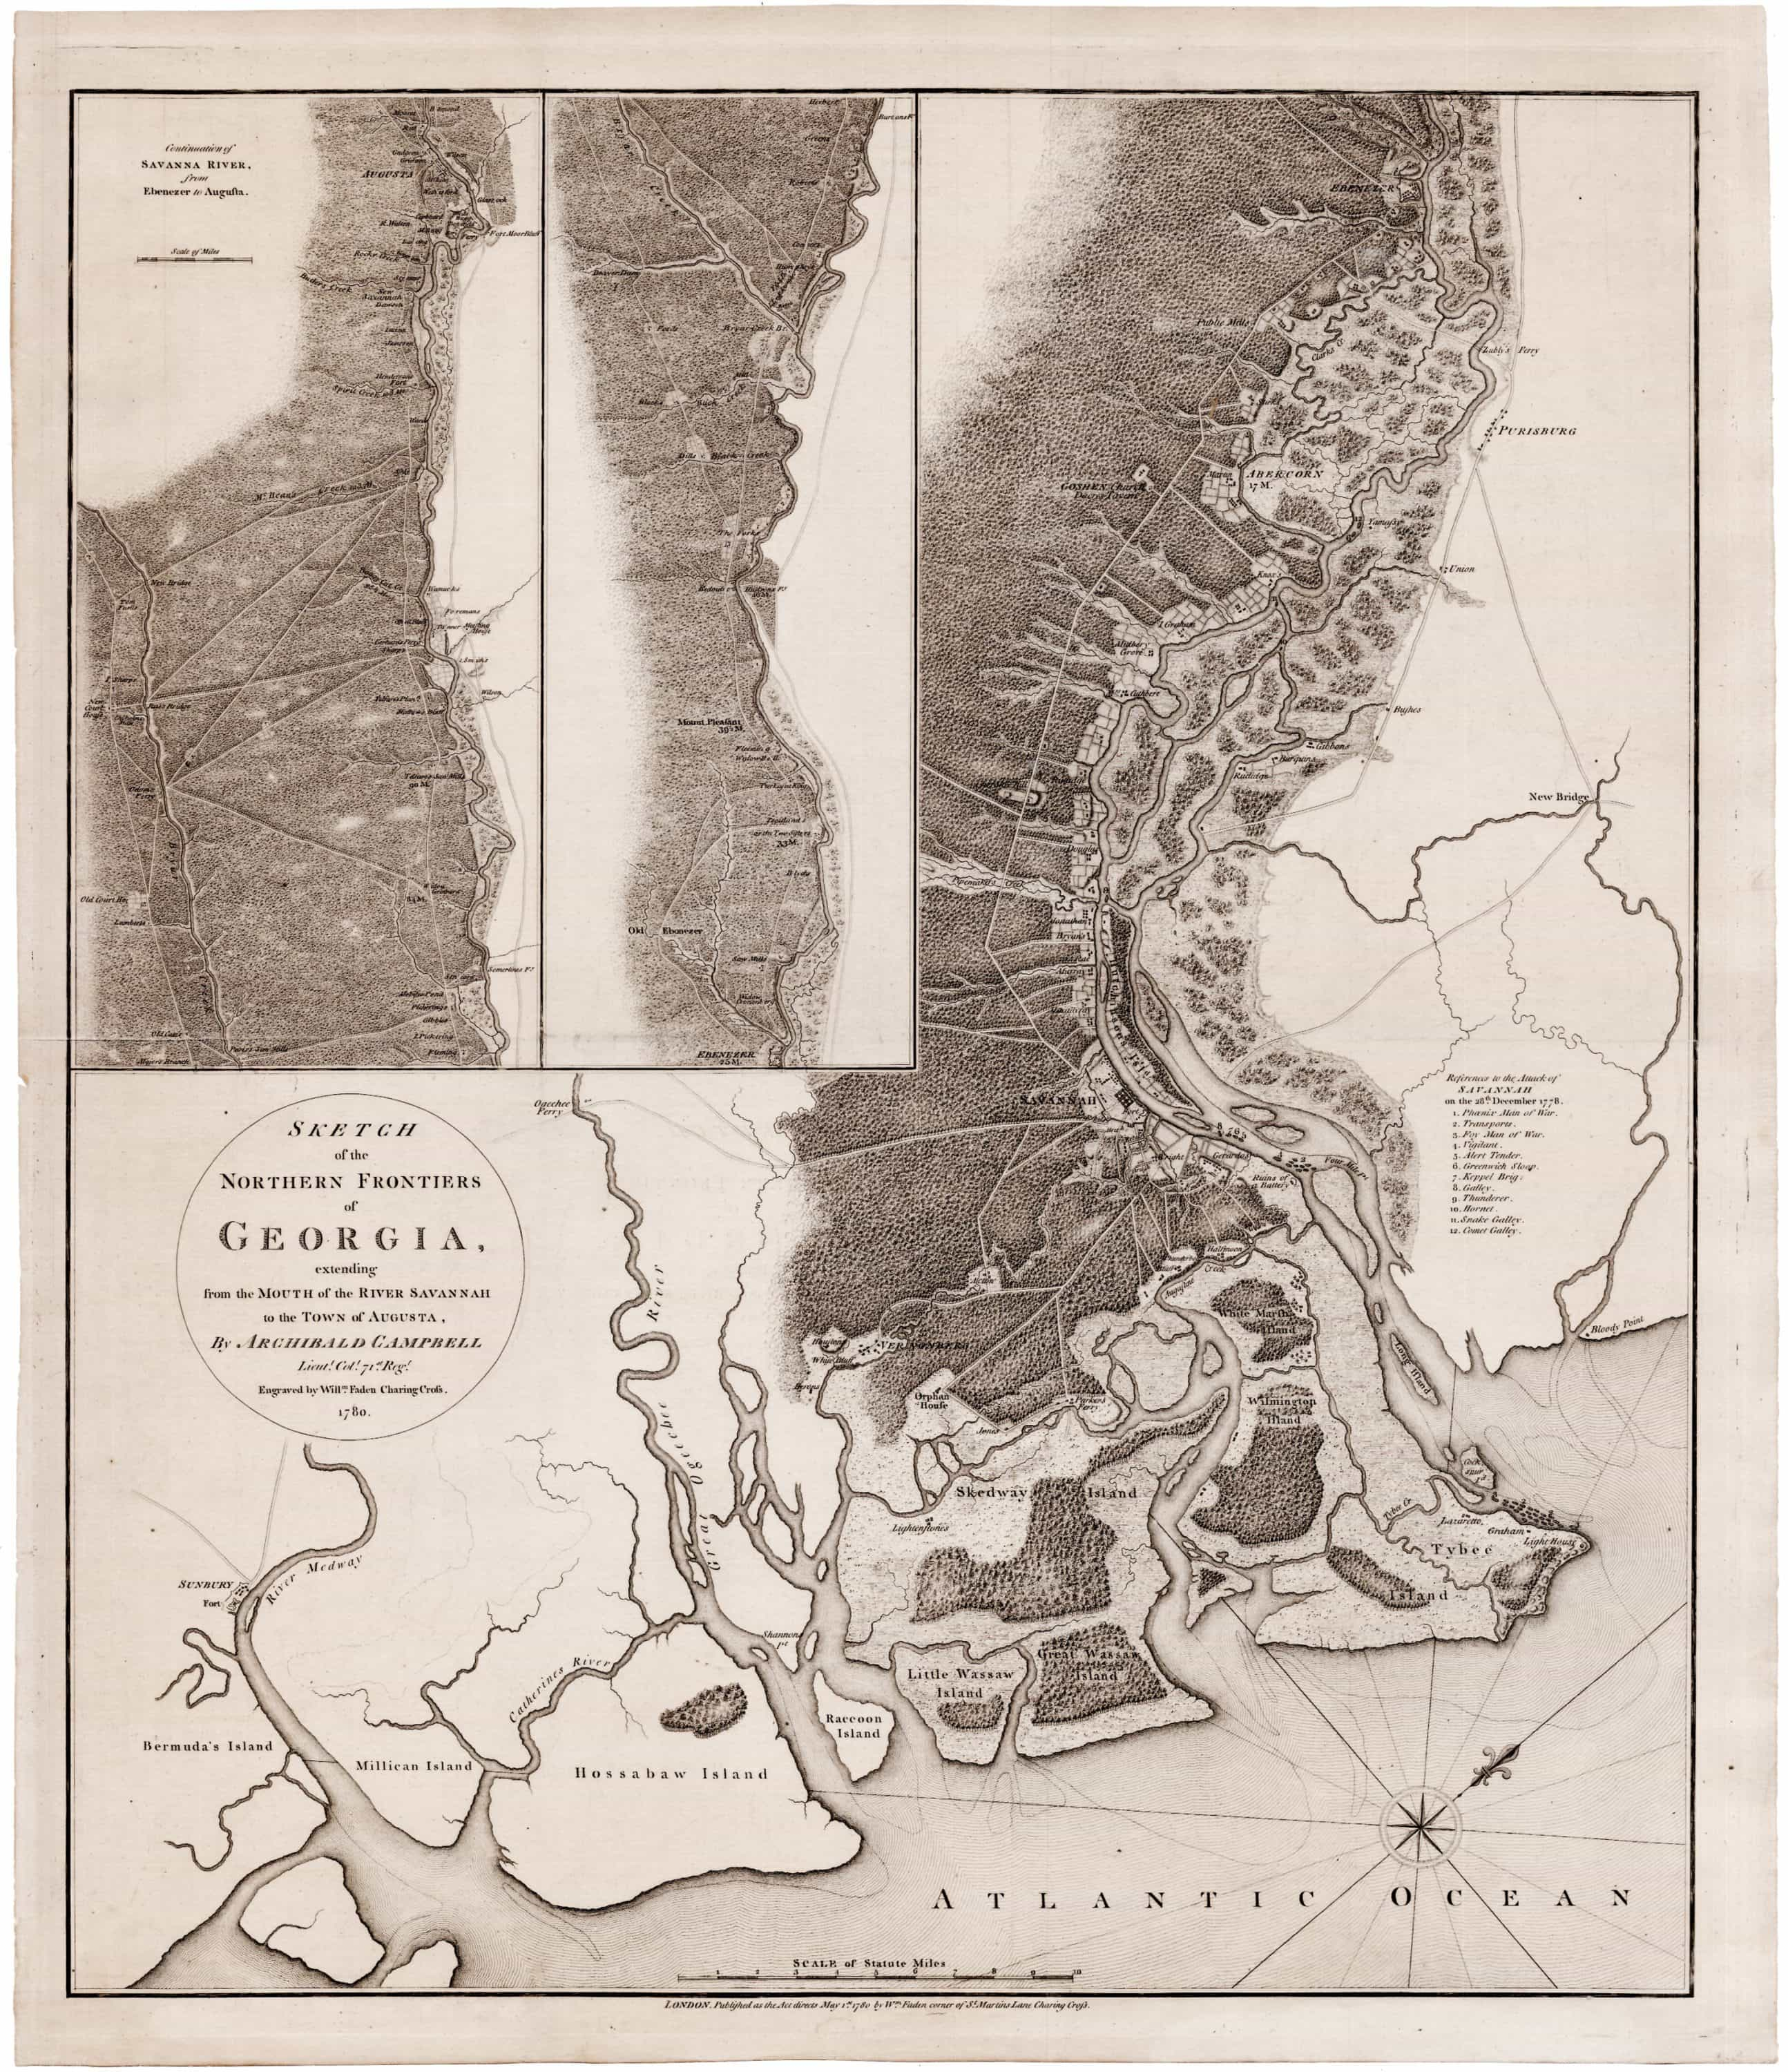 The British capture Savannah Georgia in 1778 - Rare ... on address in georgia, english in georgia, the map alaska, highway in georgia, history in georgia, buildings in georgia, the map russia, the map tennessee, resources in georgia, the map south carolina, the map washington, the map colorado, silver in georgia, the map new jersey, the map california, home in georgia, the map new hampshire, the map florida, the map indiana, the map pennsylvania,